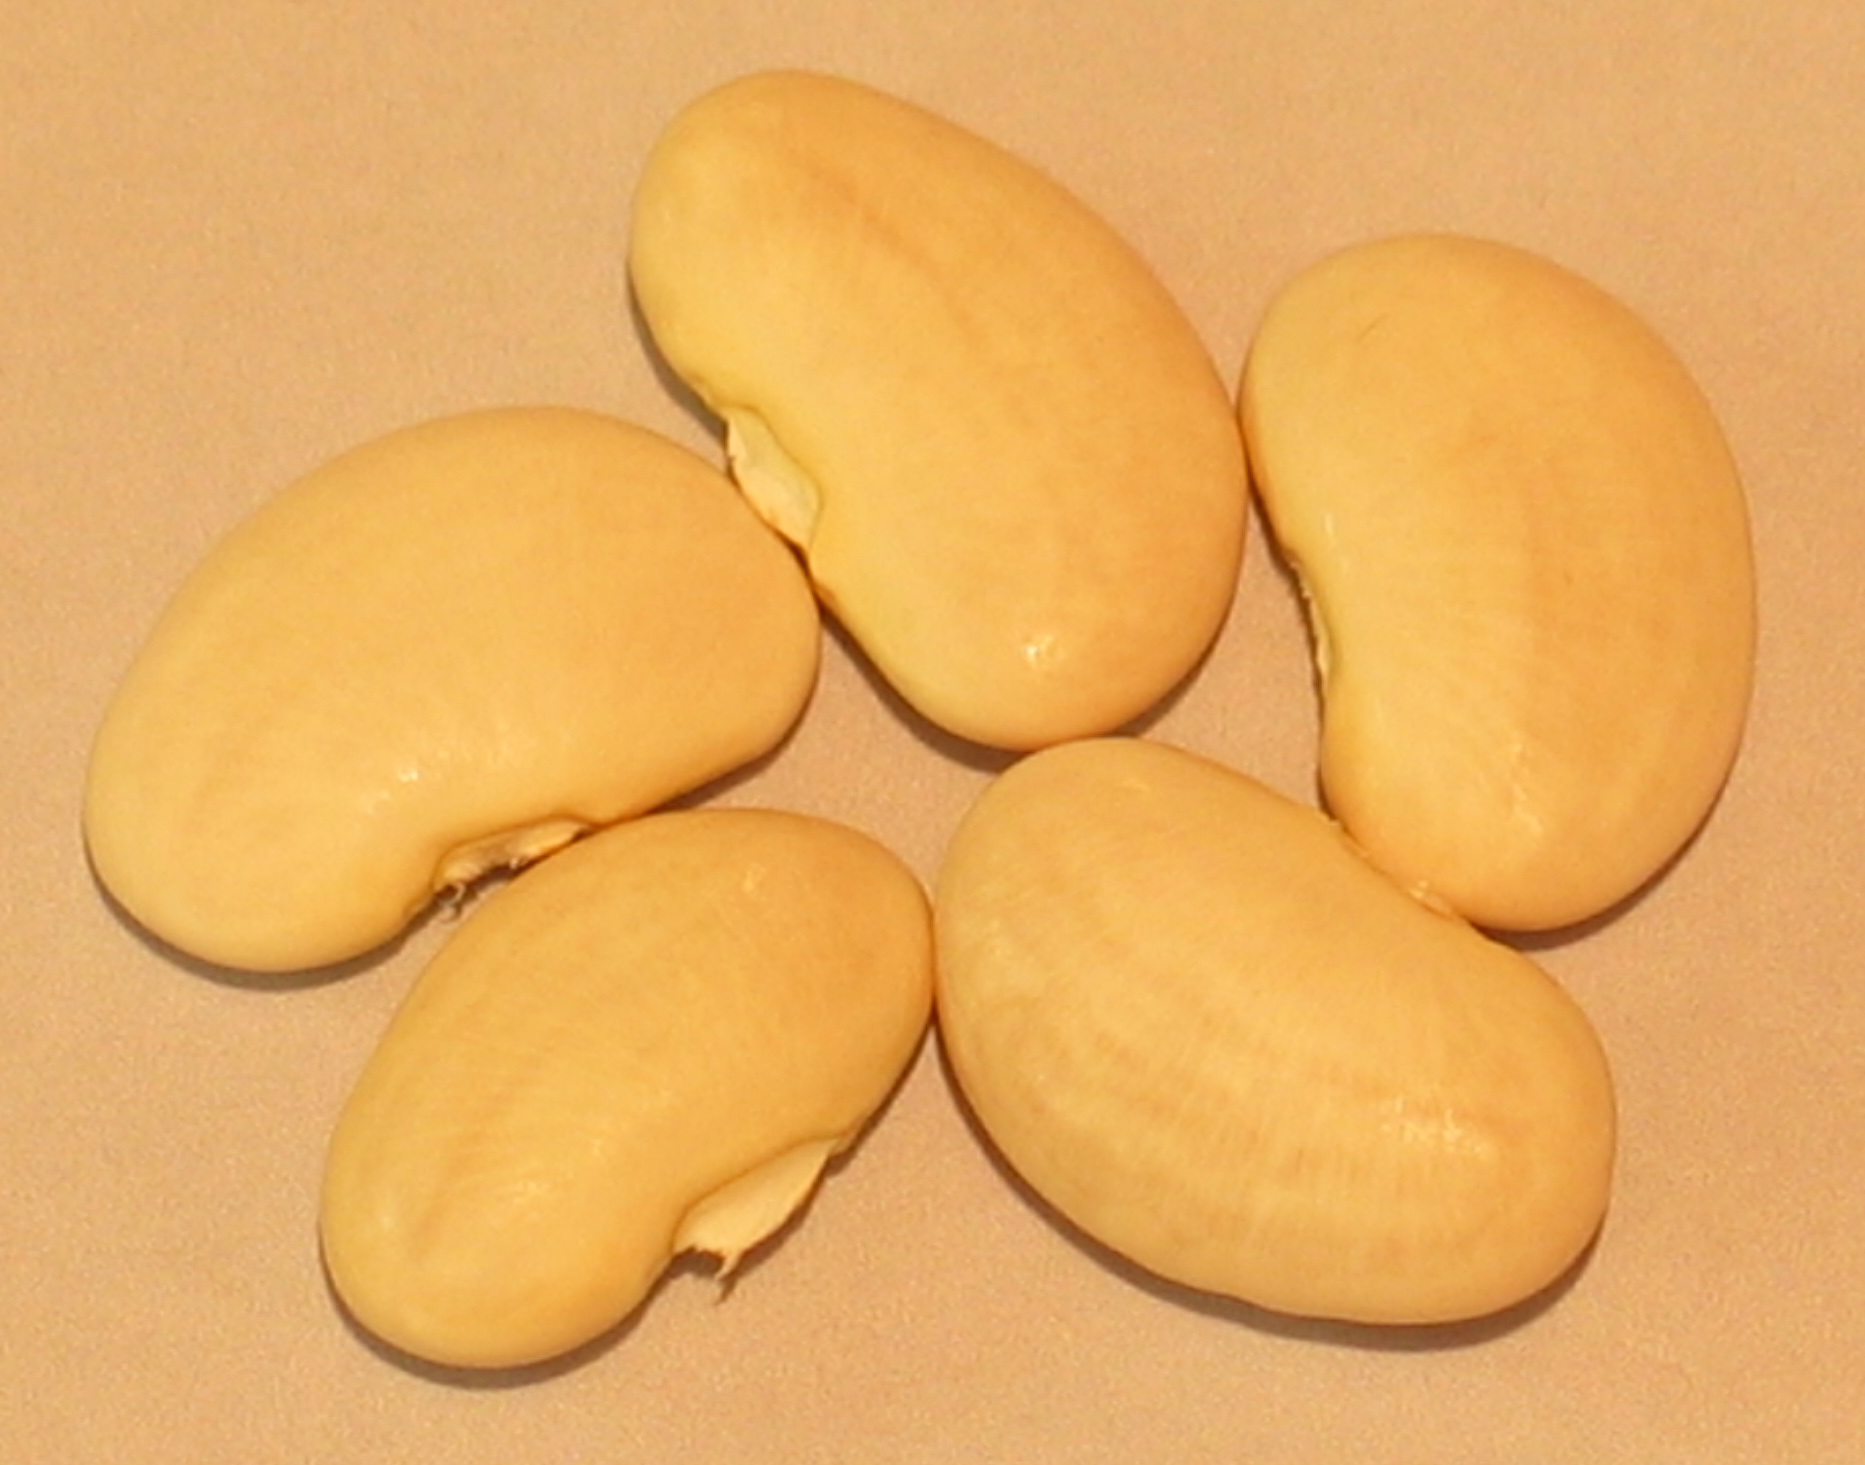 image of Large White Lima beans